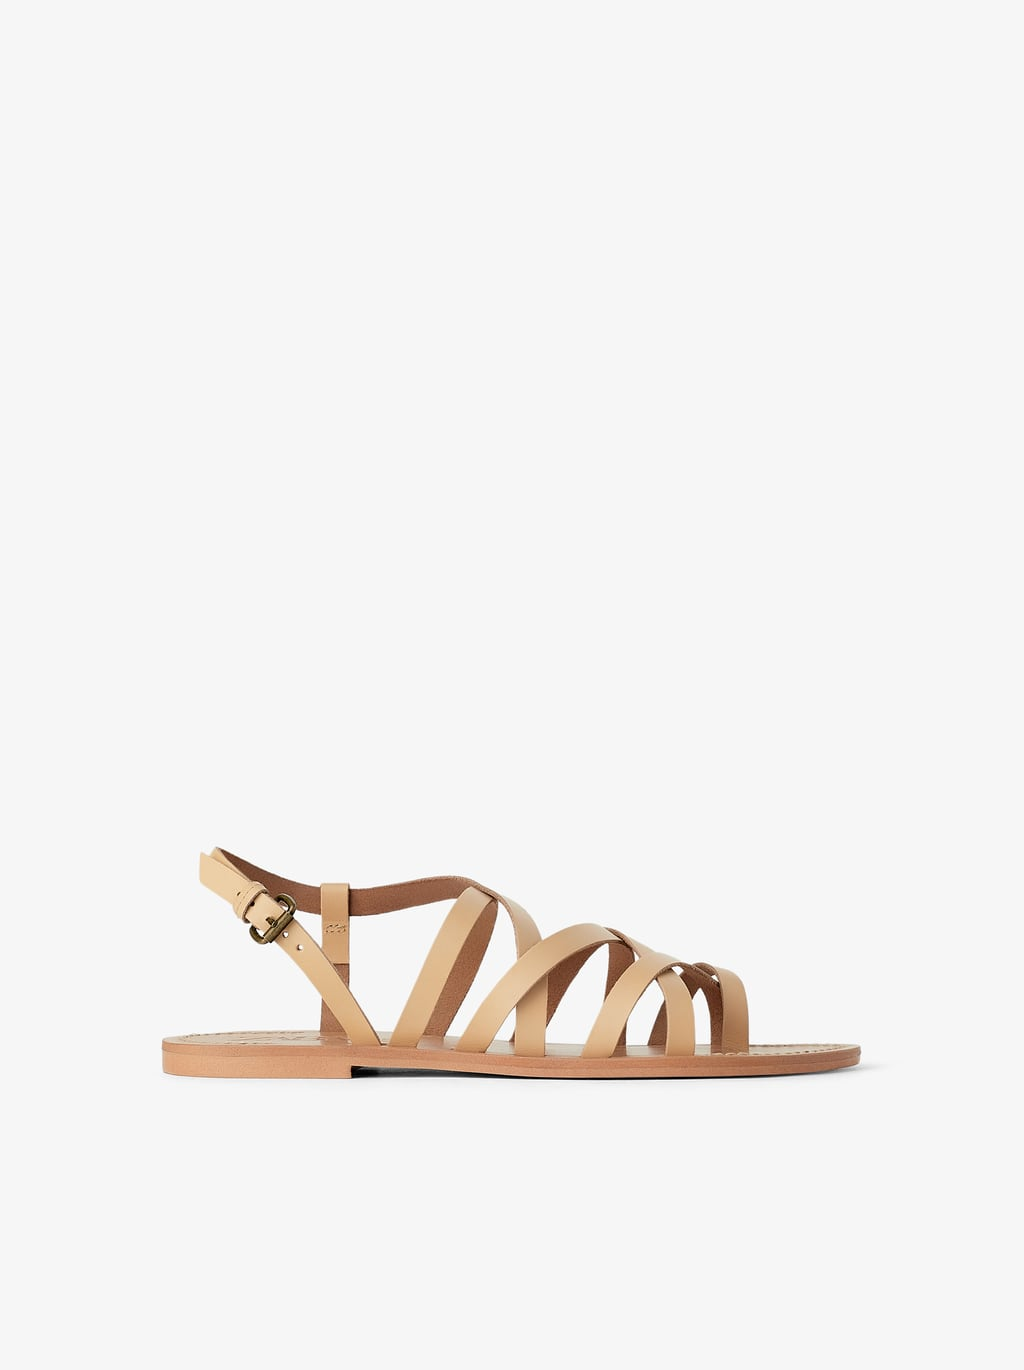 Zara Leather Flat Strap Sandals.jpg